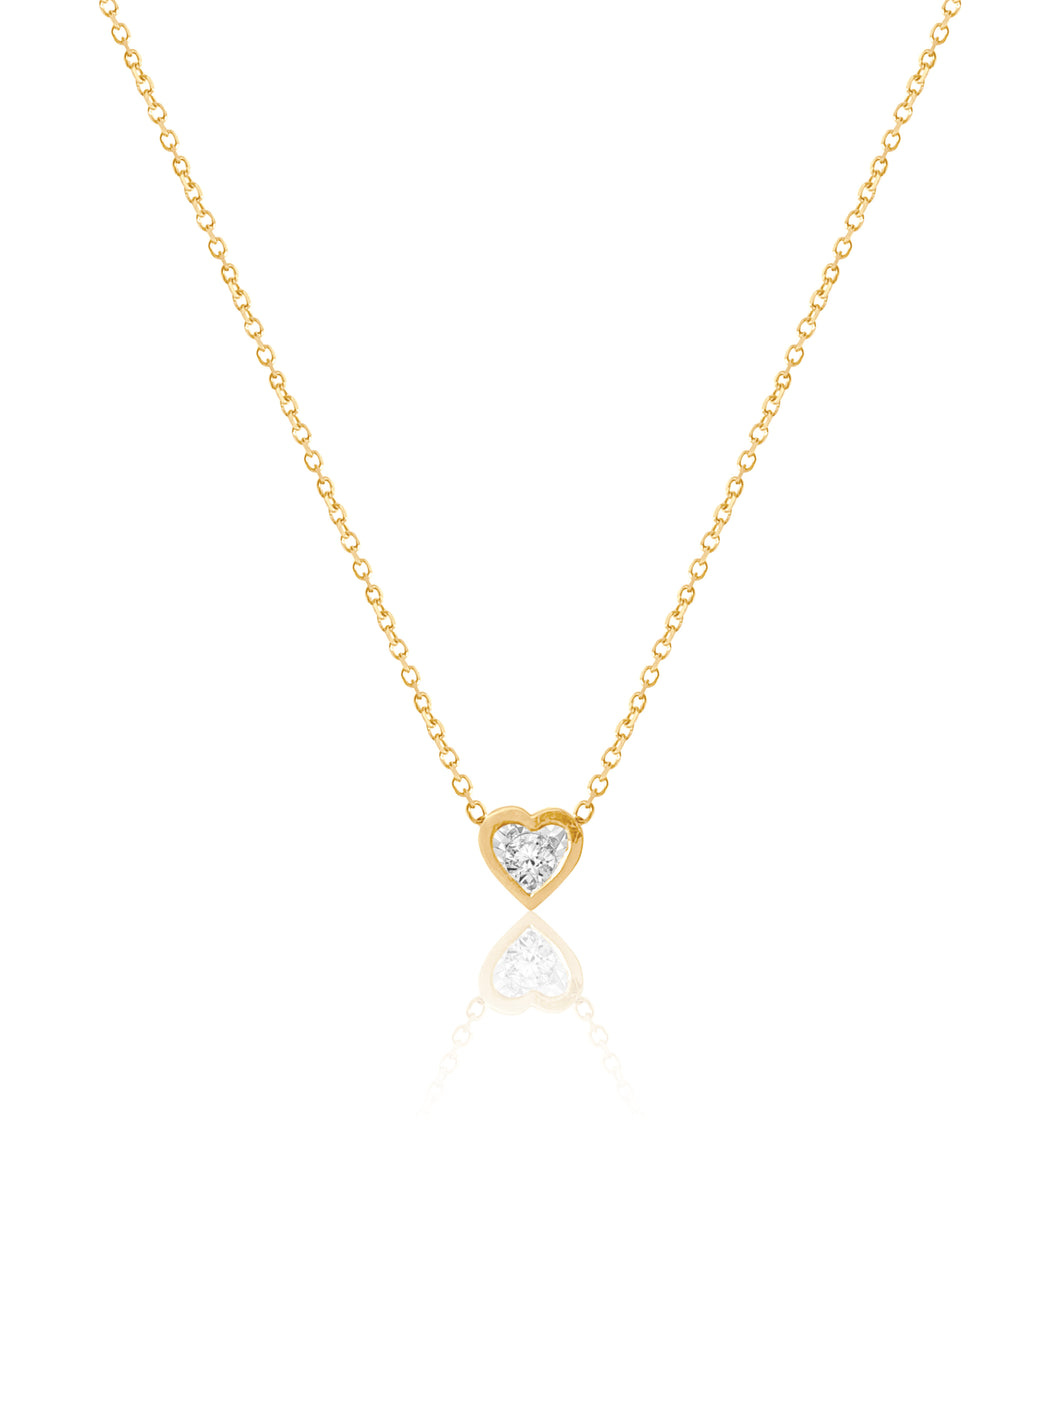 14K Heart Shaped Bezel Diamonds Necklace